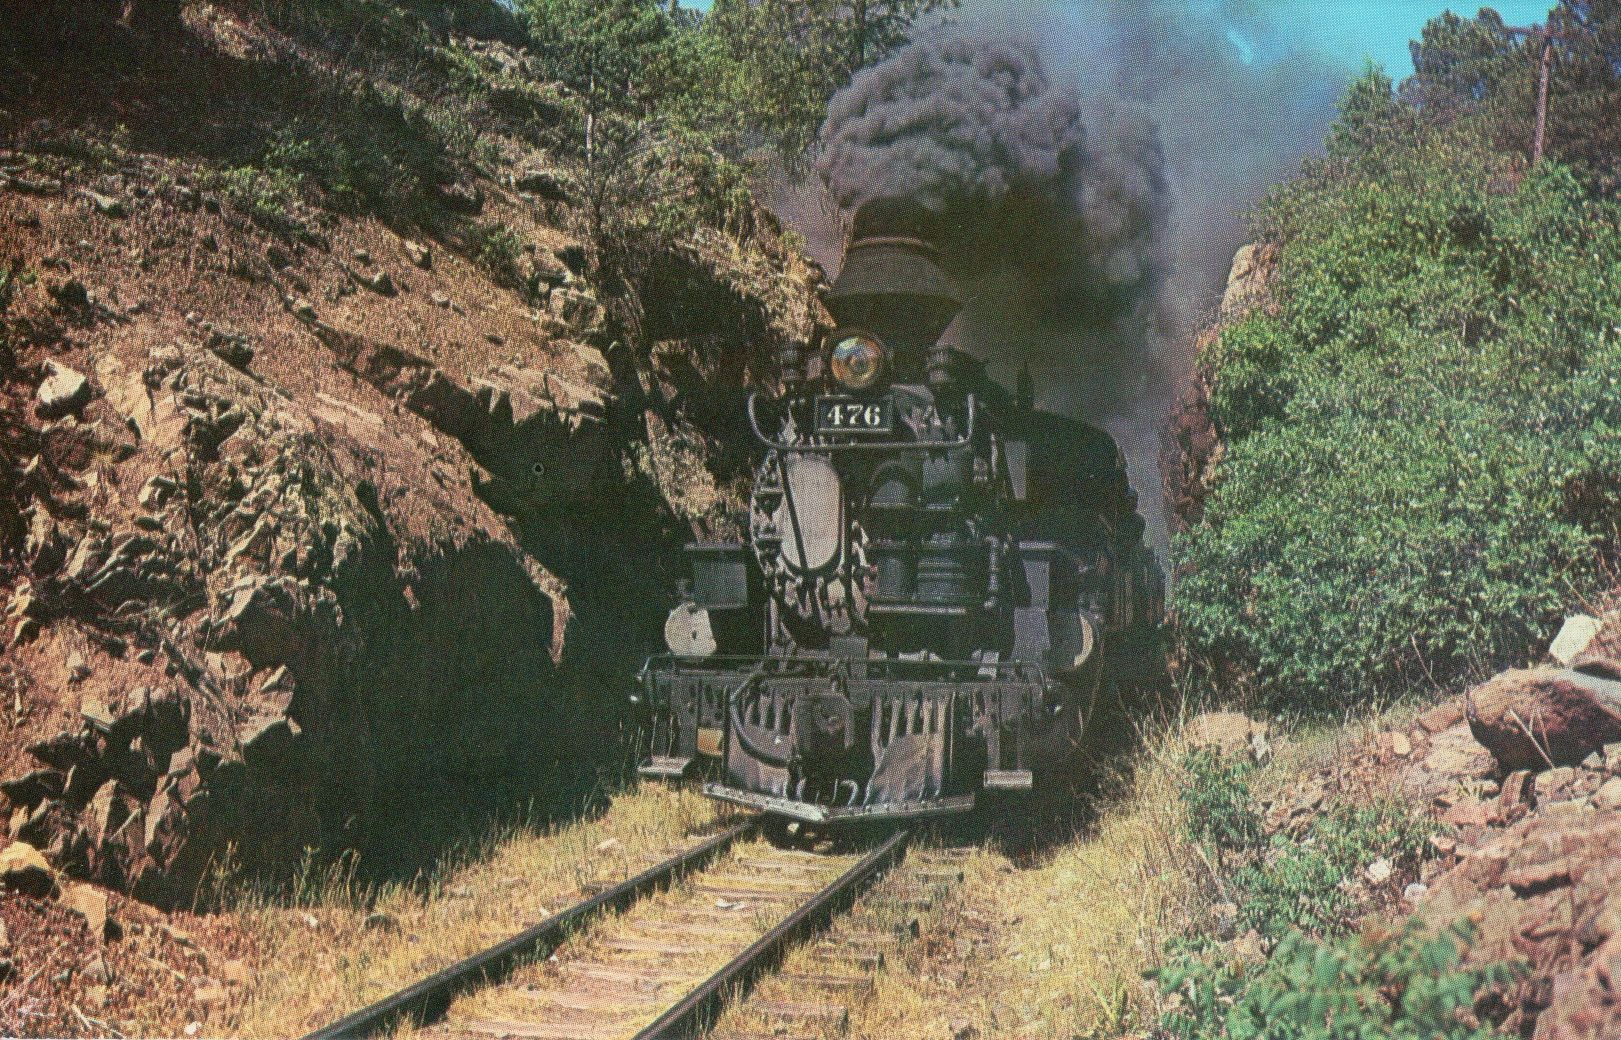 The Silverton Narrow Gauge in the Rockwood Cut.  This historic last narrow gauge train, using some of the original passenger cars built in 1882, roars through the Rockwood cut towards the HighLine above the Animas River.  Modern chrome card.